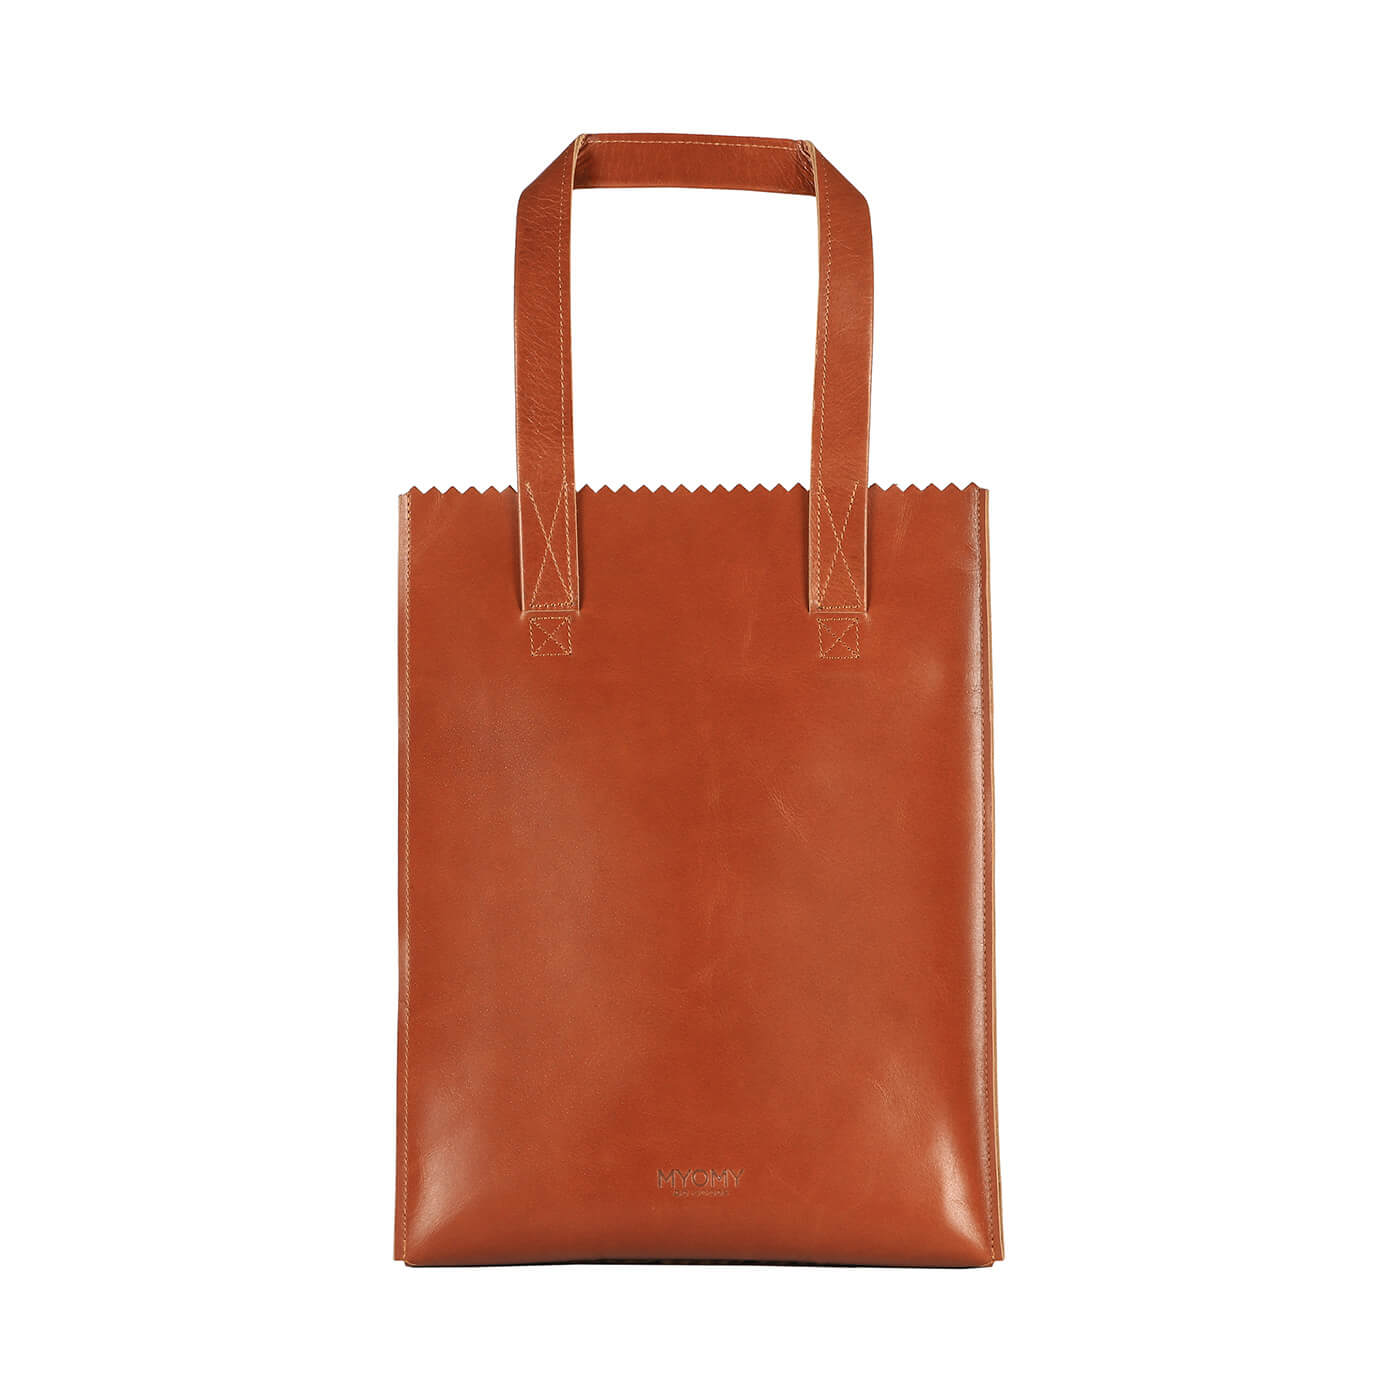 [PRE-ORDER] MY PAPER BAG Long handle zip – hunter waxy cognac